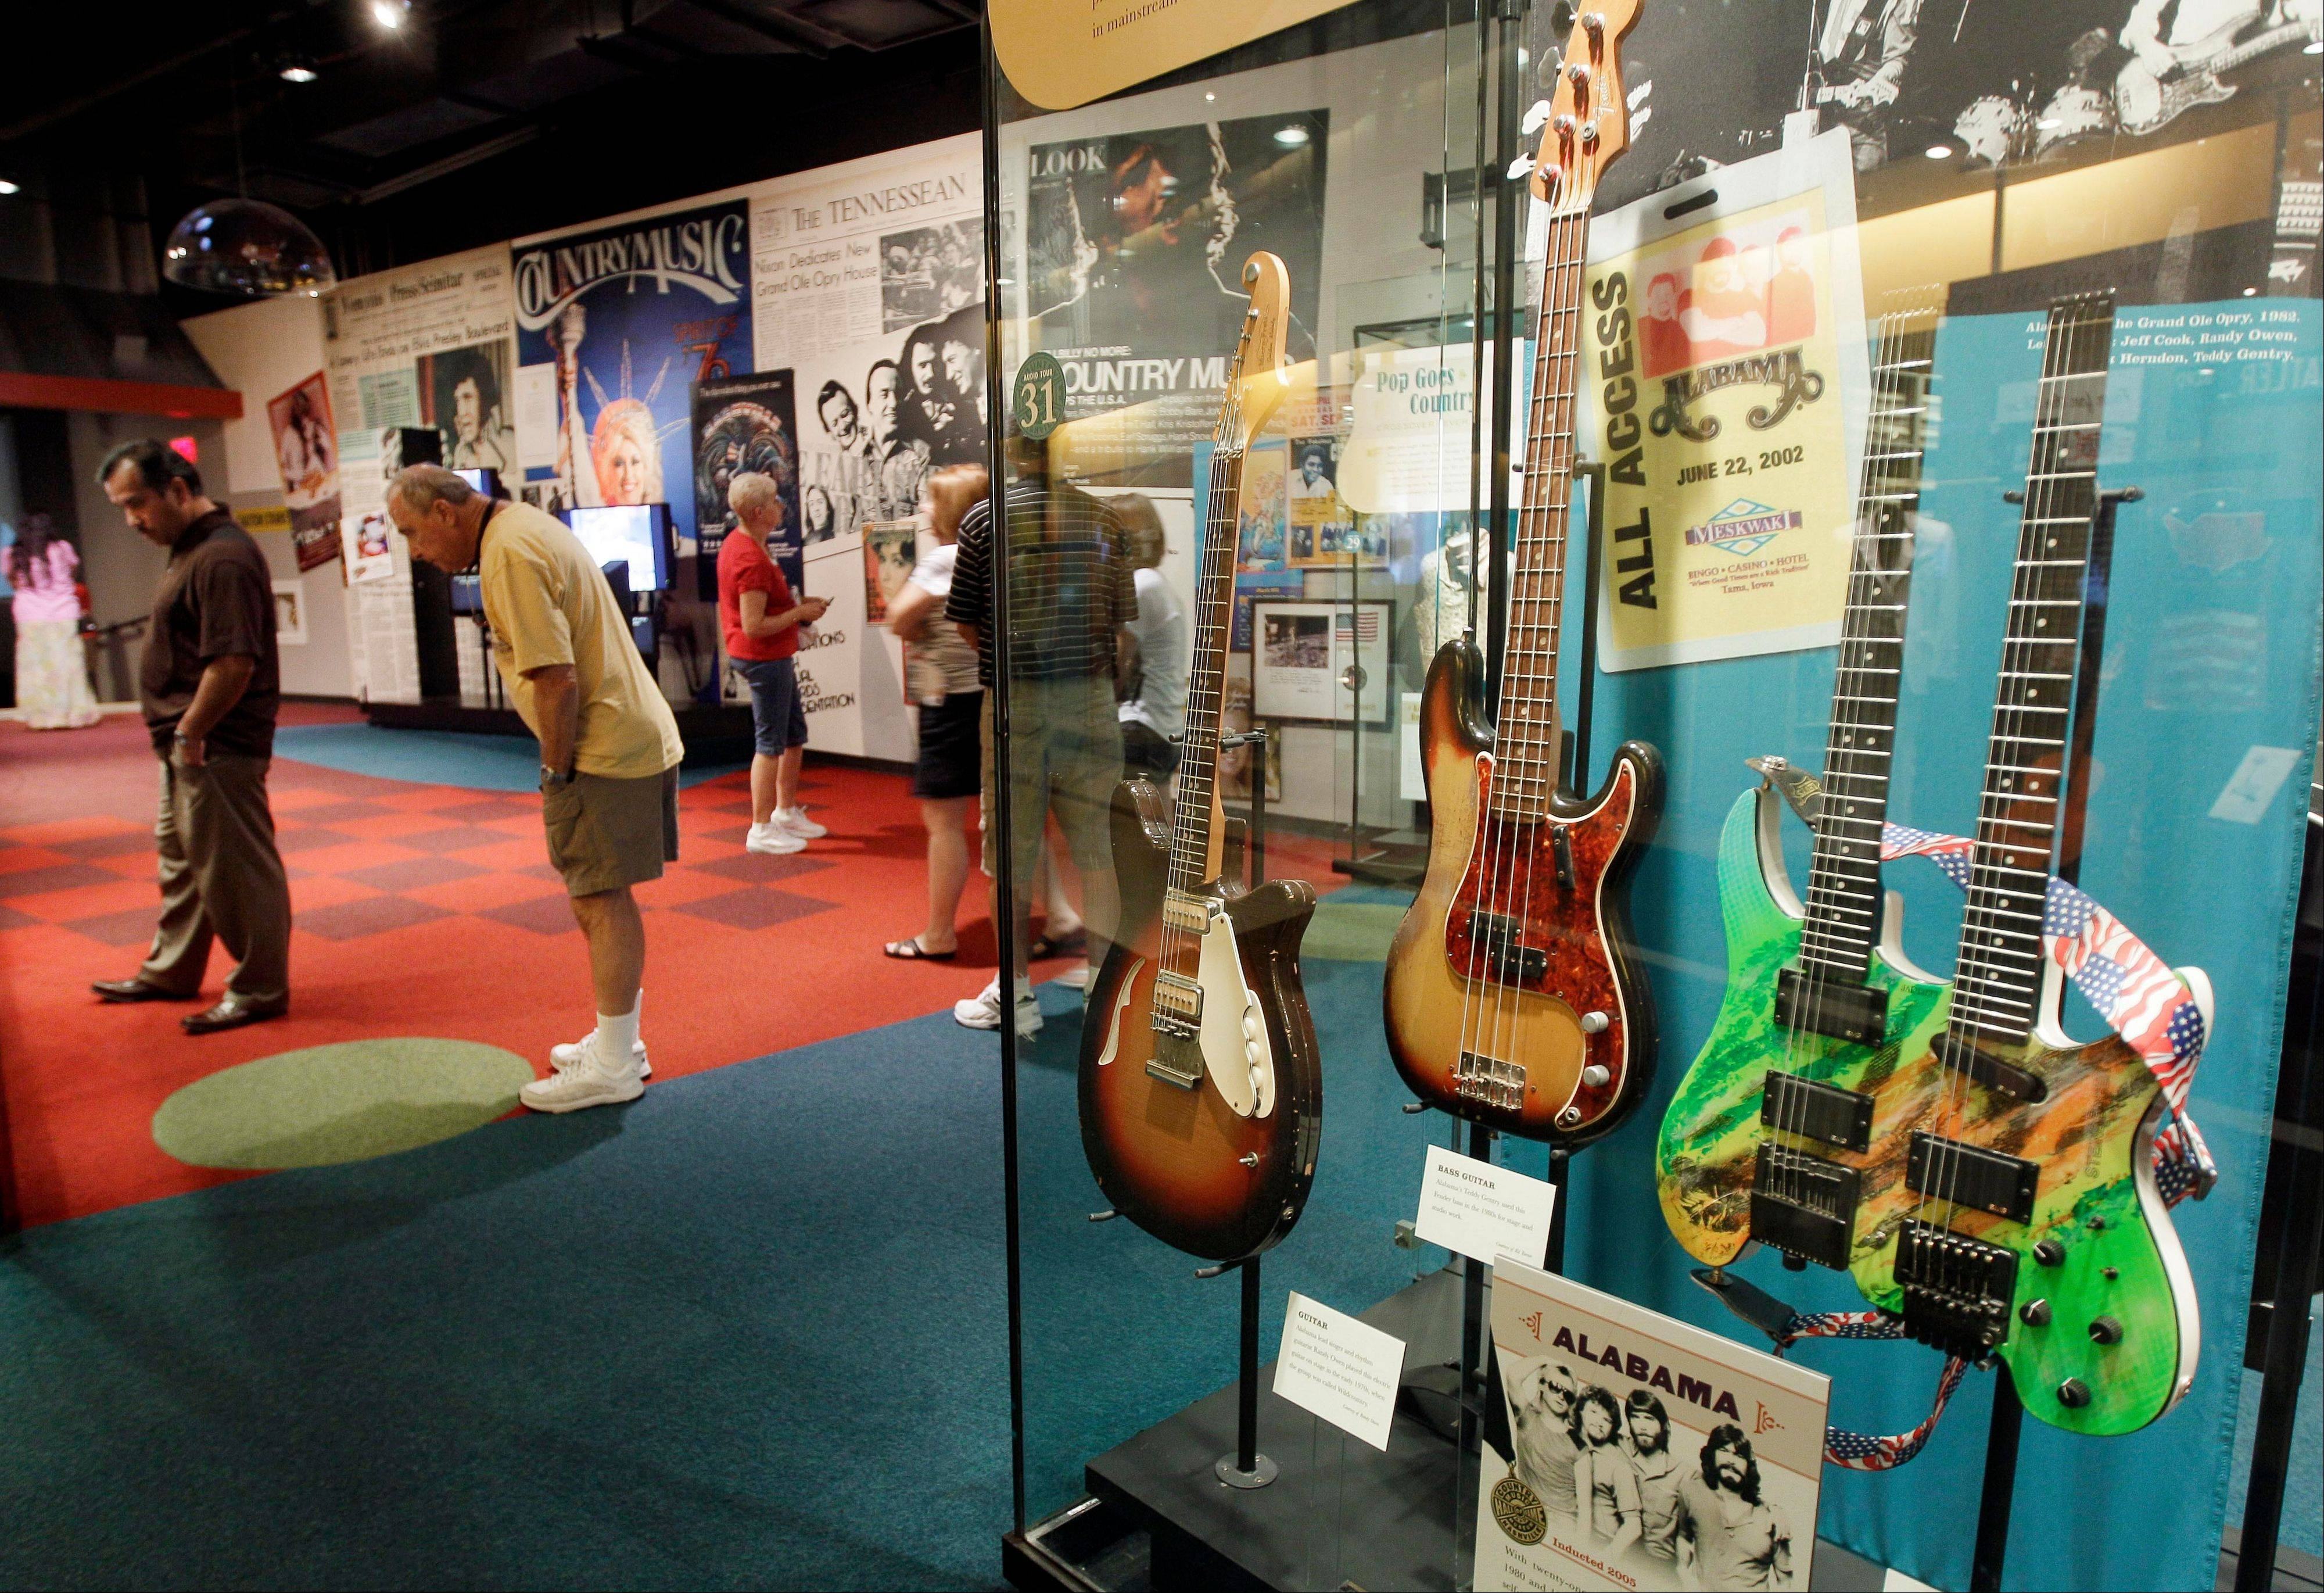 Guitars from the group Alabama are on display in the Country Music Hall of Fame and Museum in Nashville, Tenn.